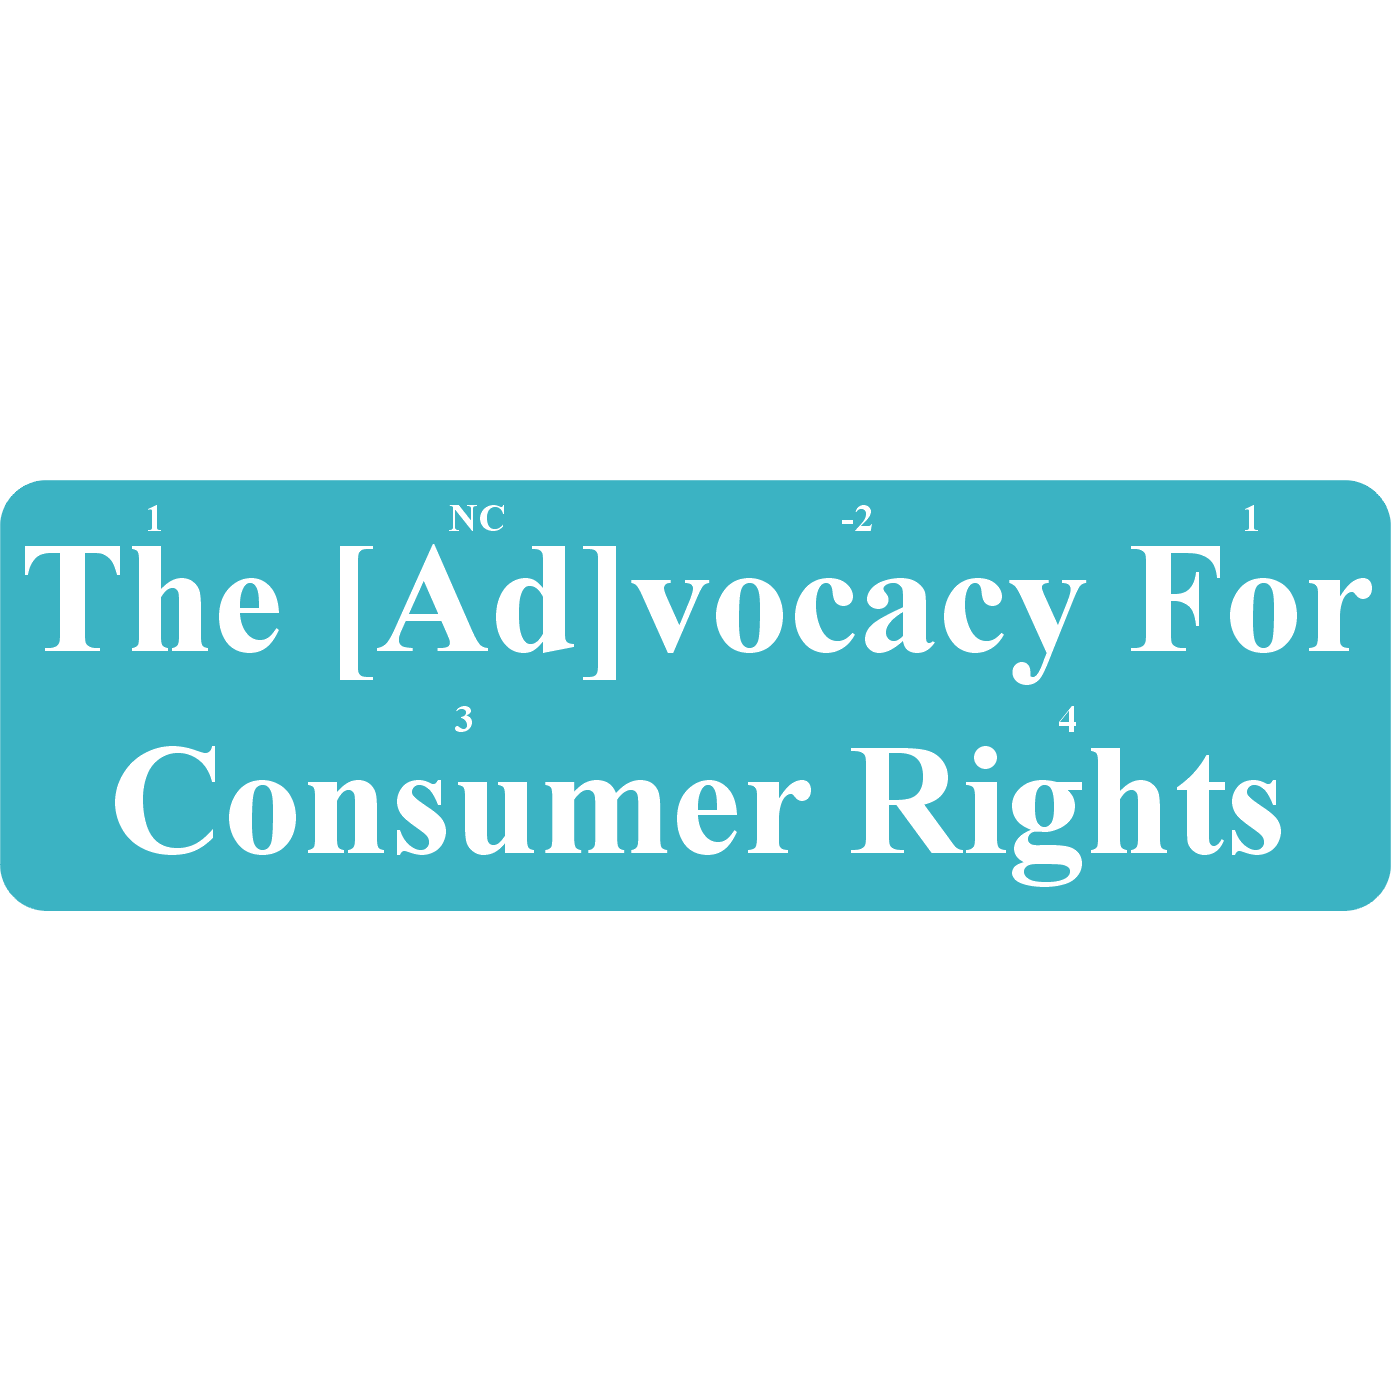 The Advocacy For Consumer Rights